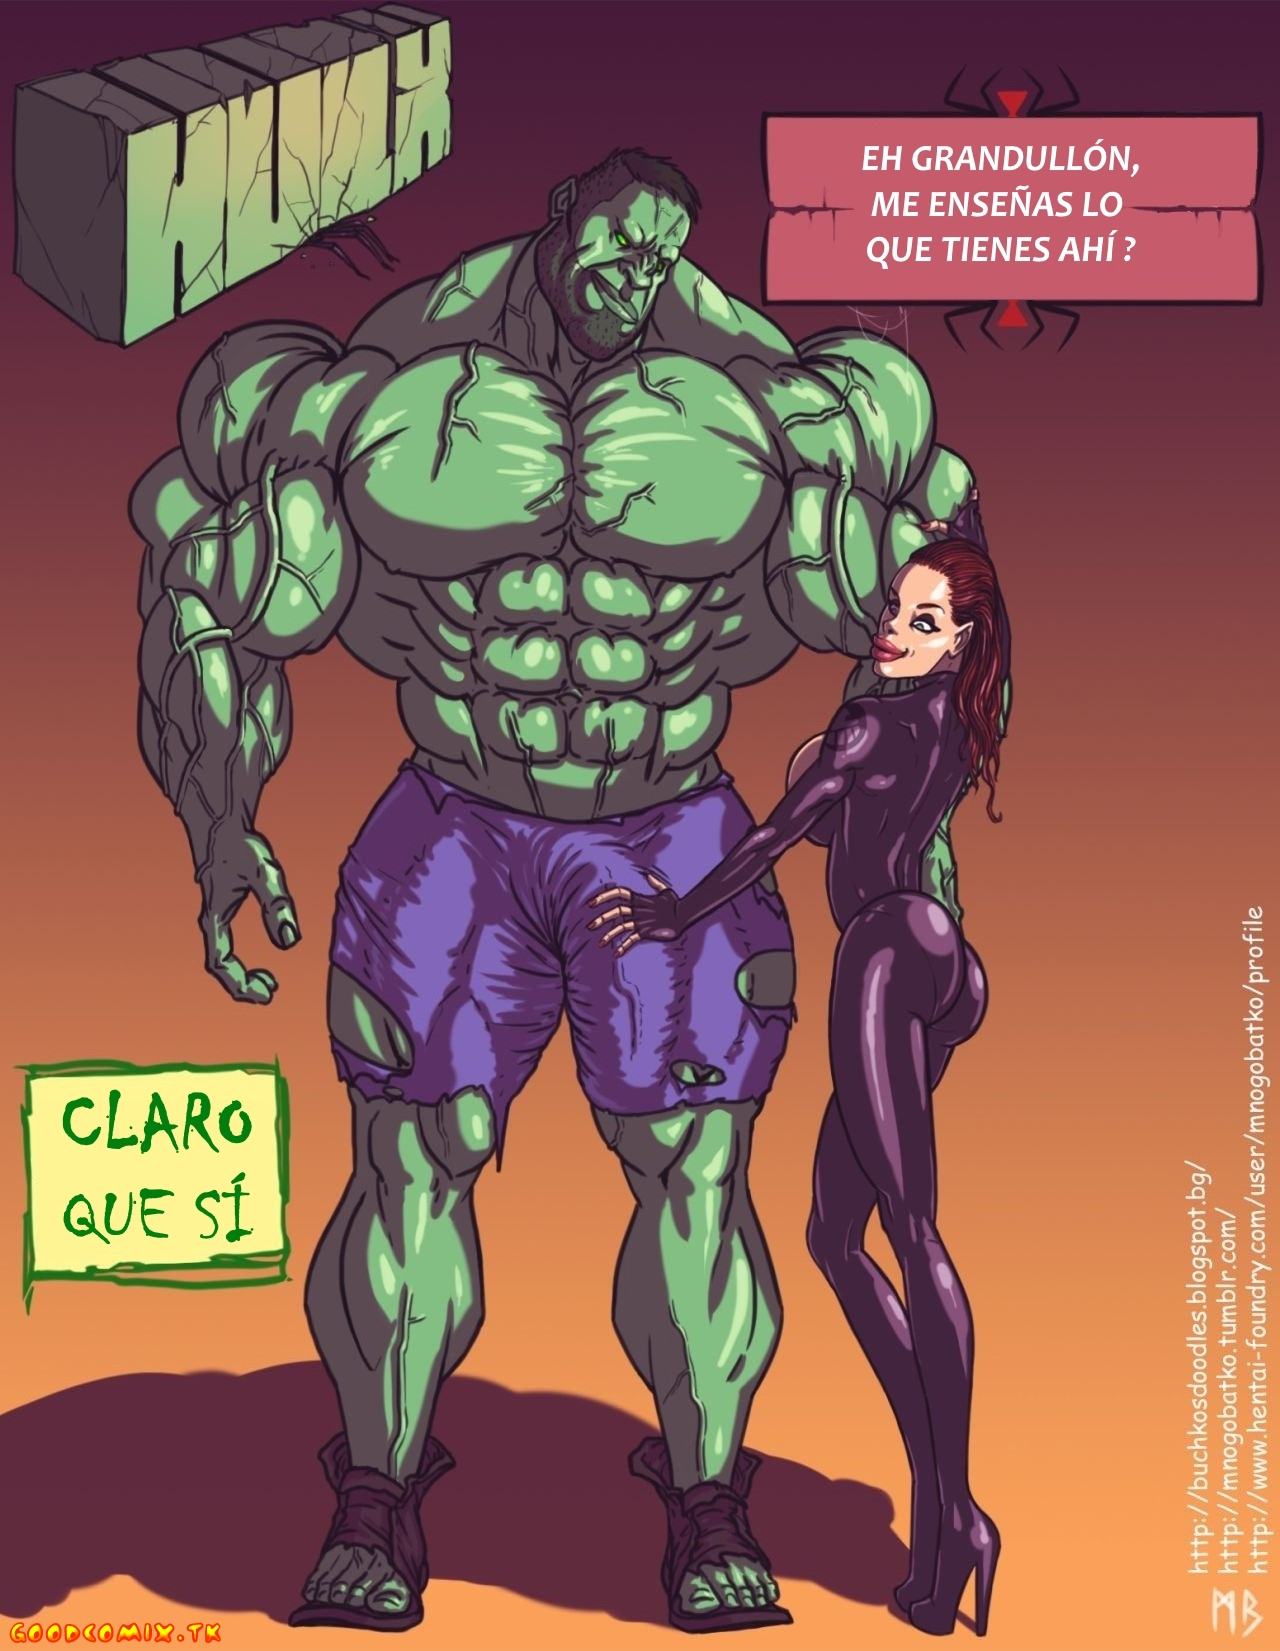 Goodcomix.tk The Avengers - [Mnogobatko] - Hulk vs Black Widow